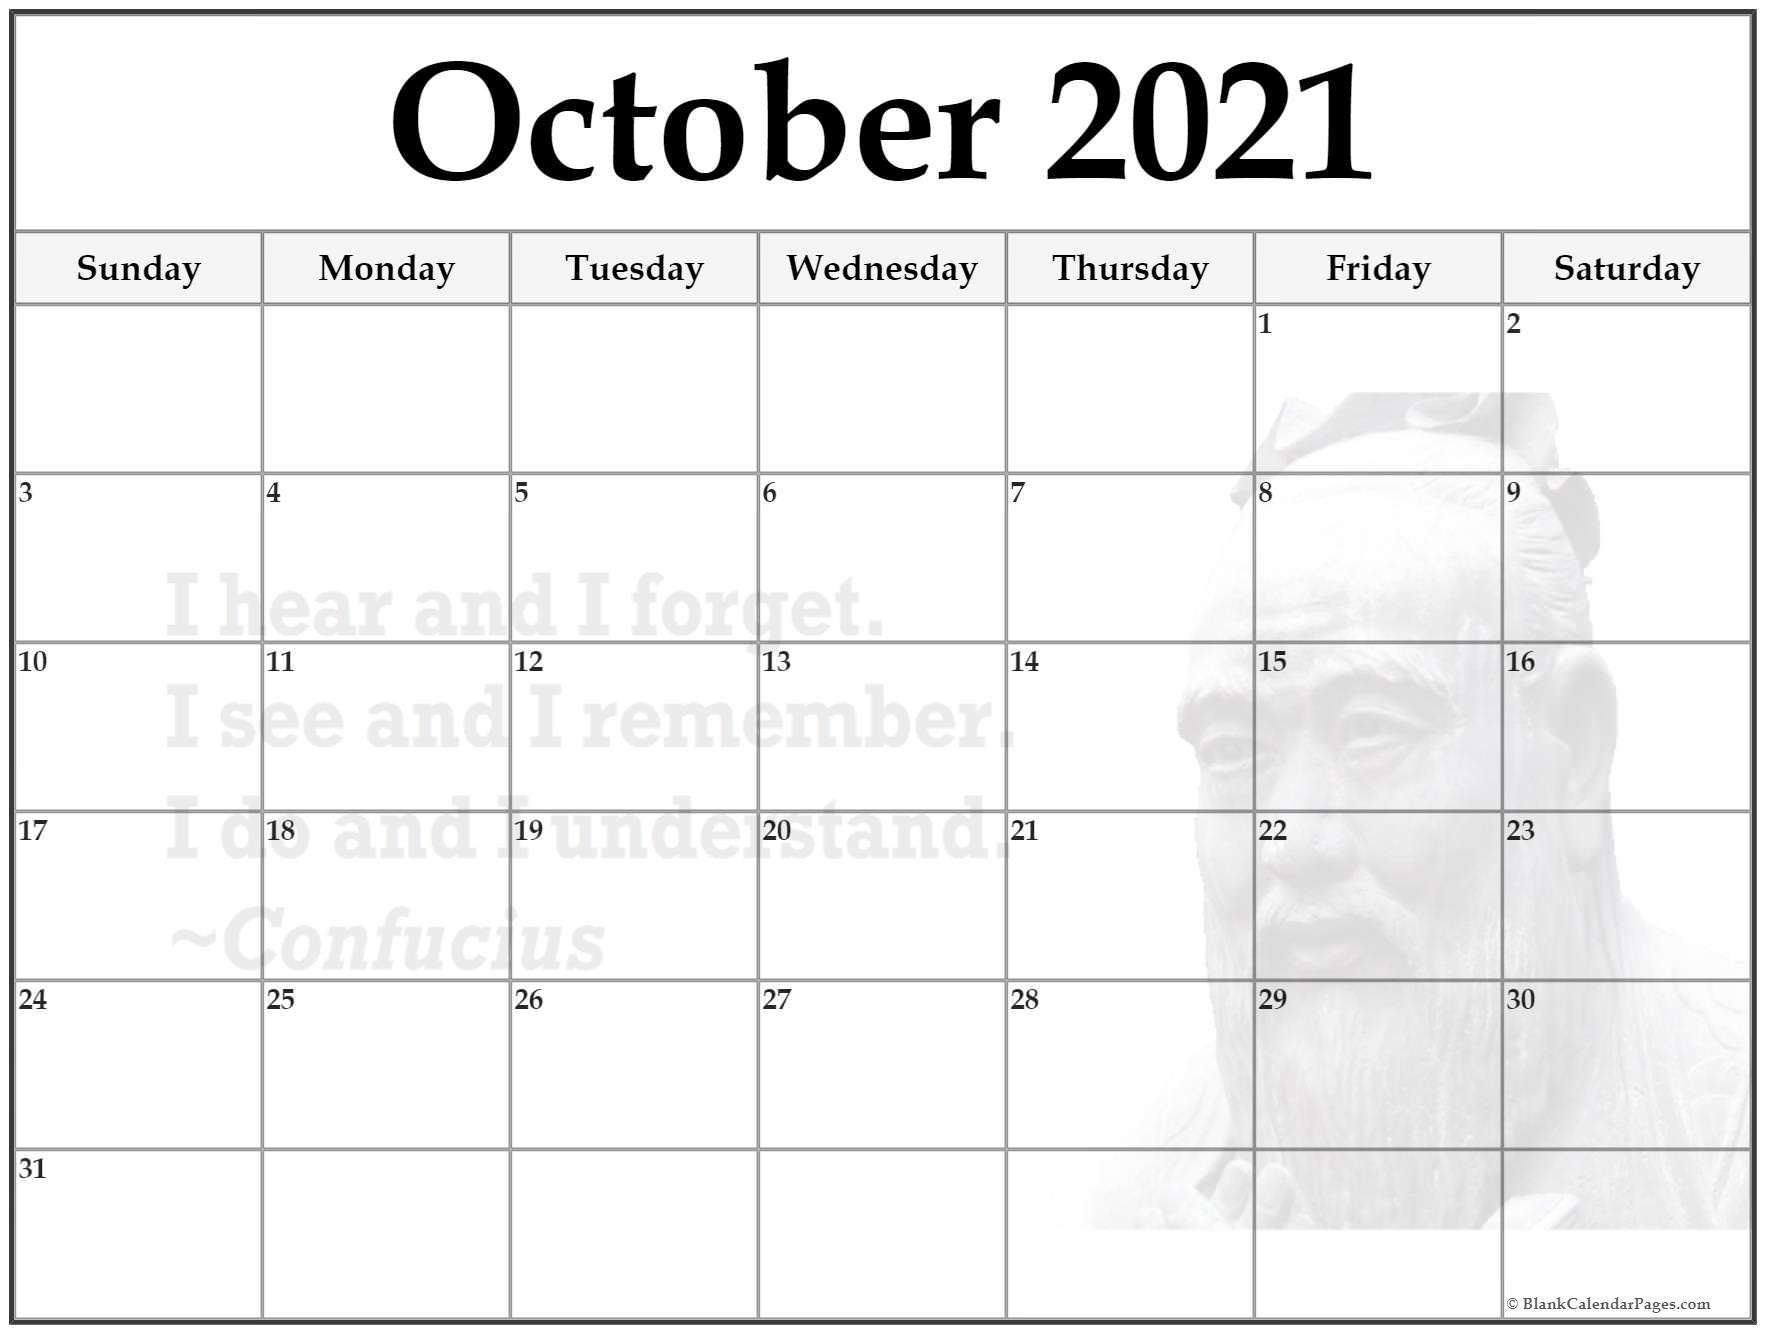 October 2020 monthly calendar template. I hear and I forget.I see and I remember.I do and I understand.~Confucius